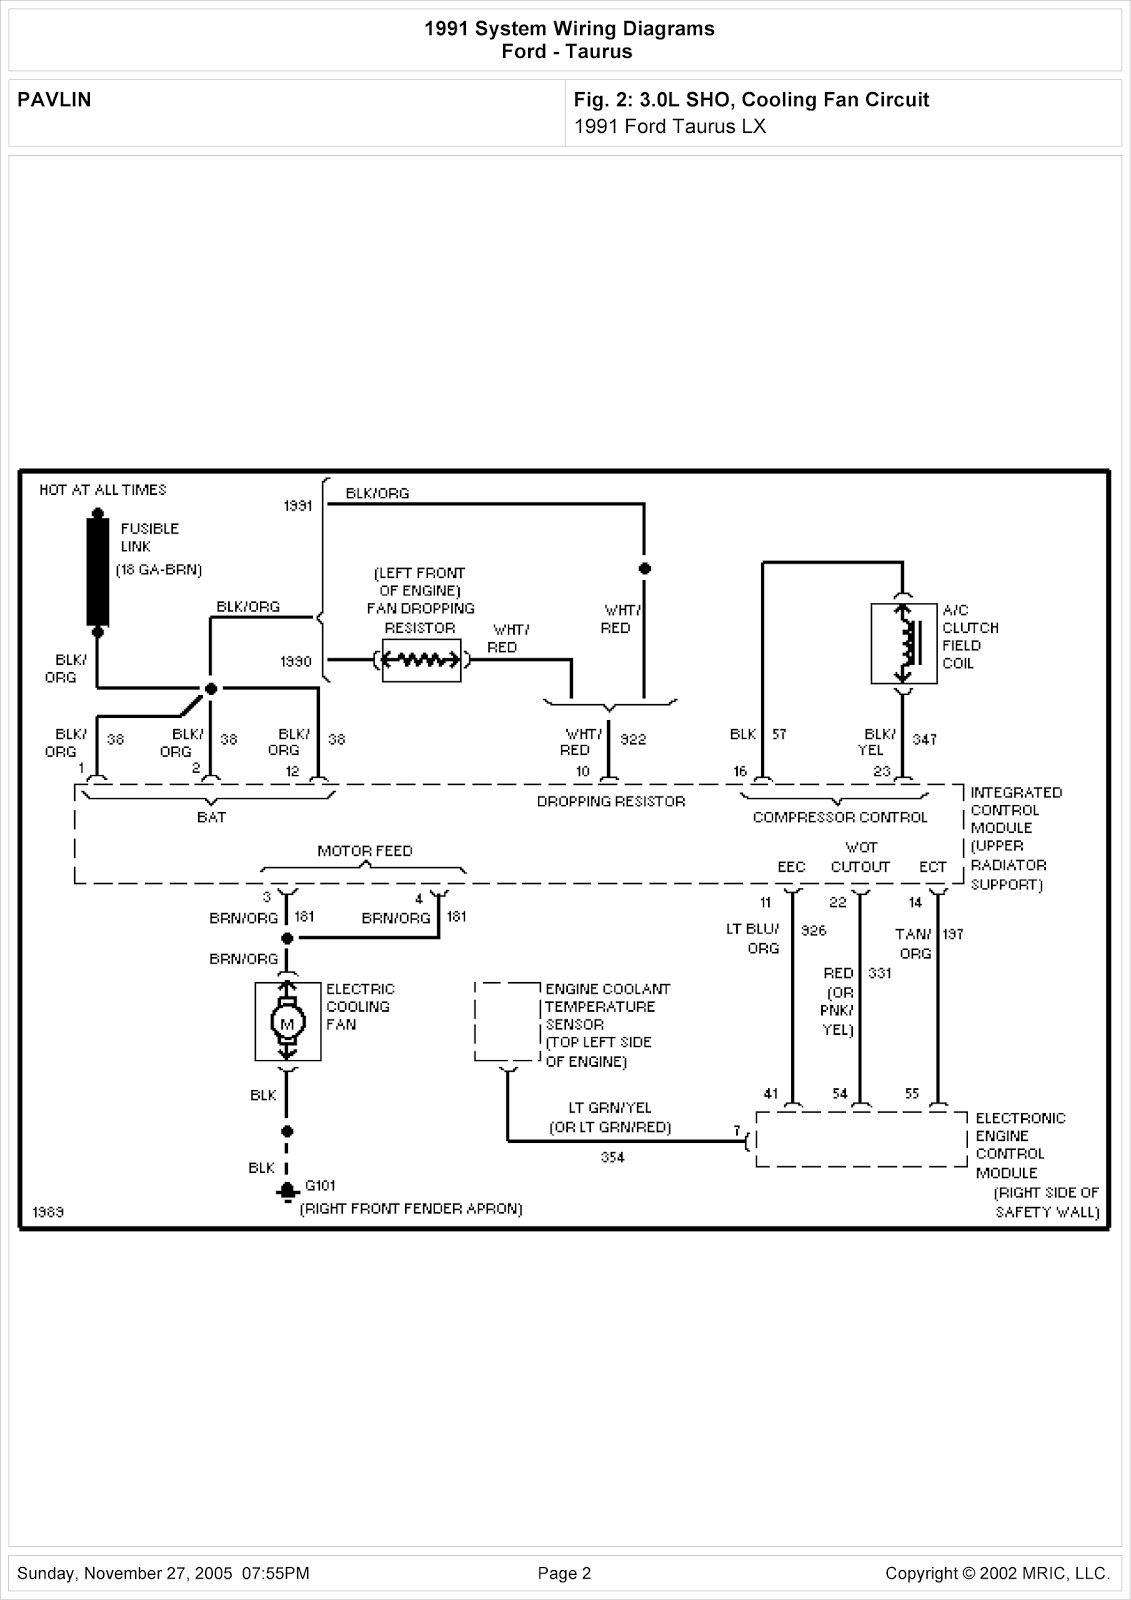 1999 Ford Taurus Wiring Diagram : 31 Wiring Diagram Images